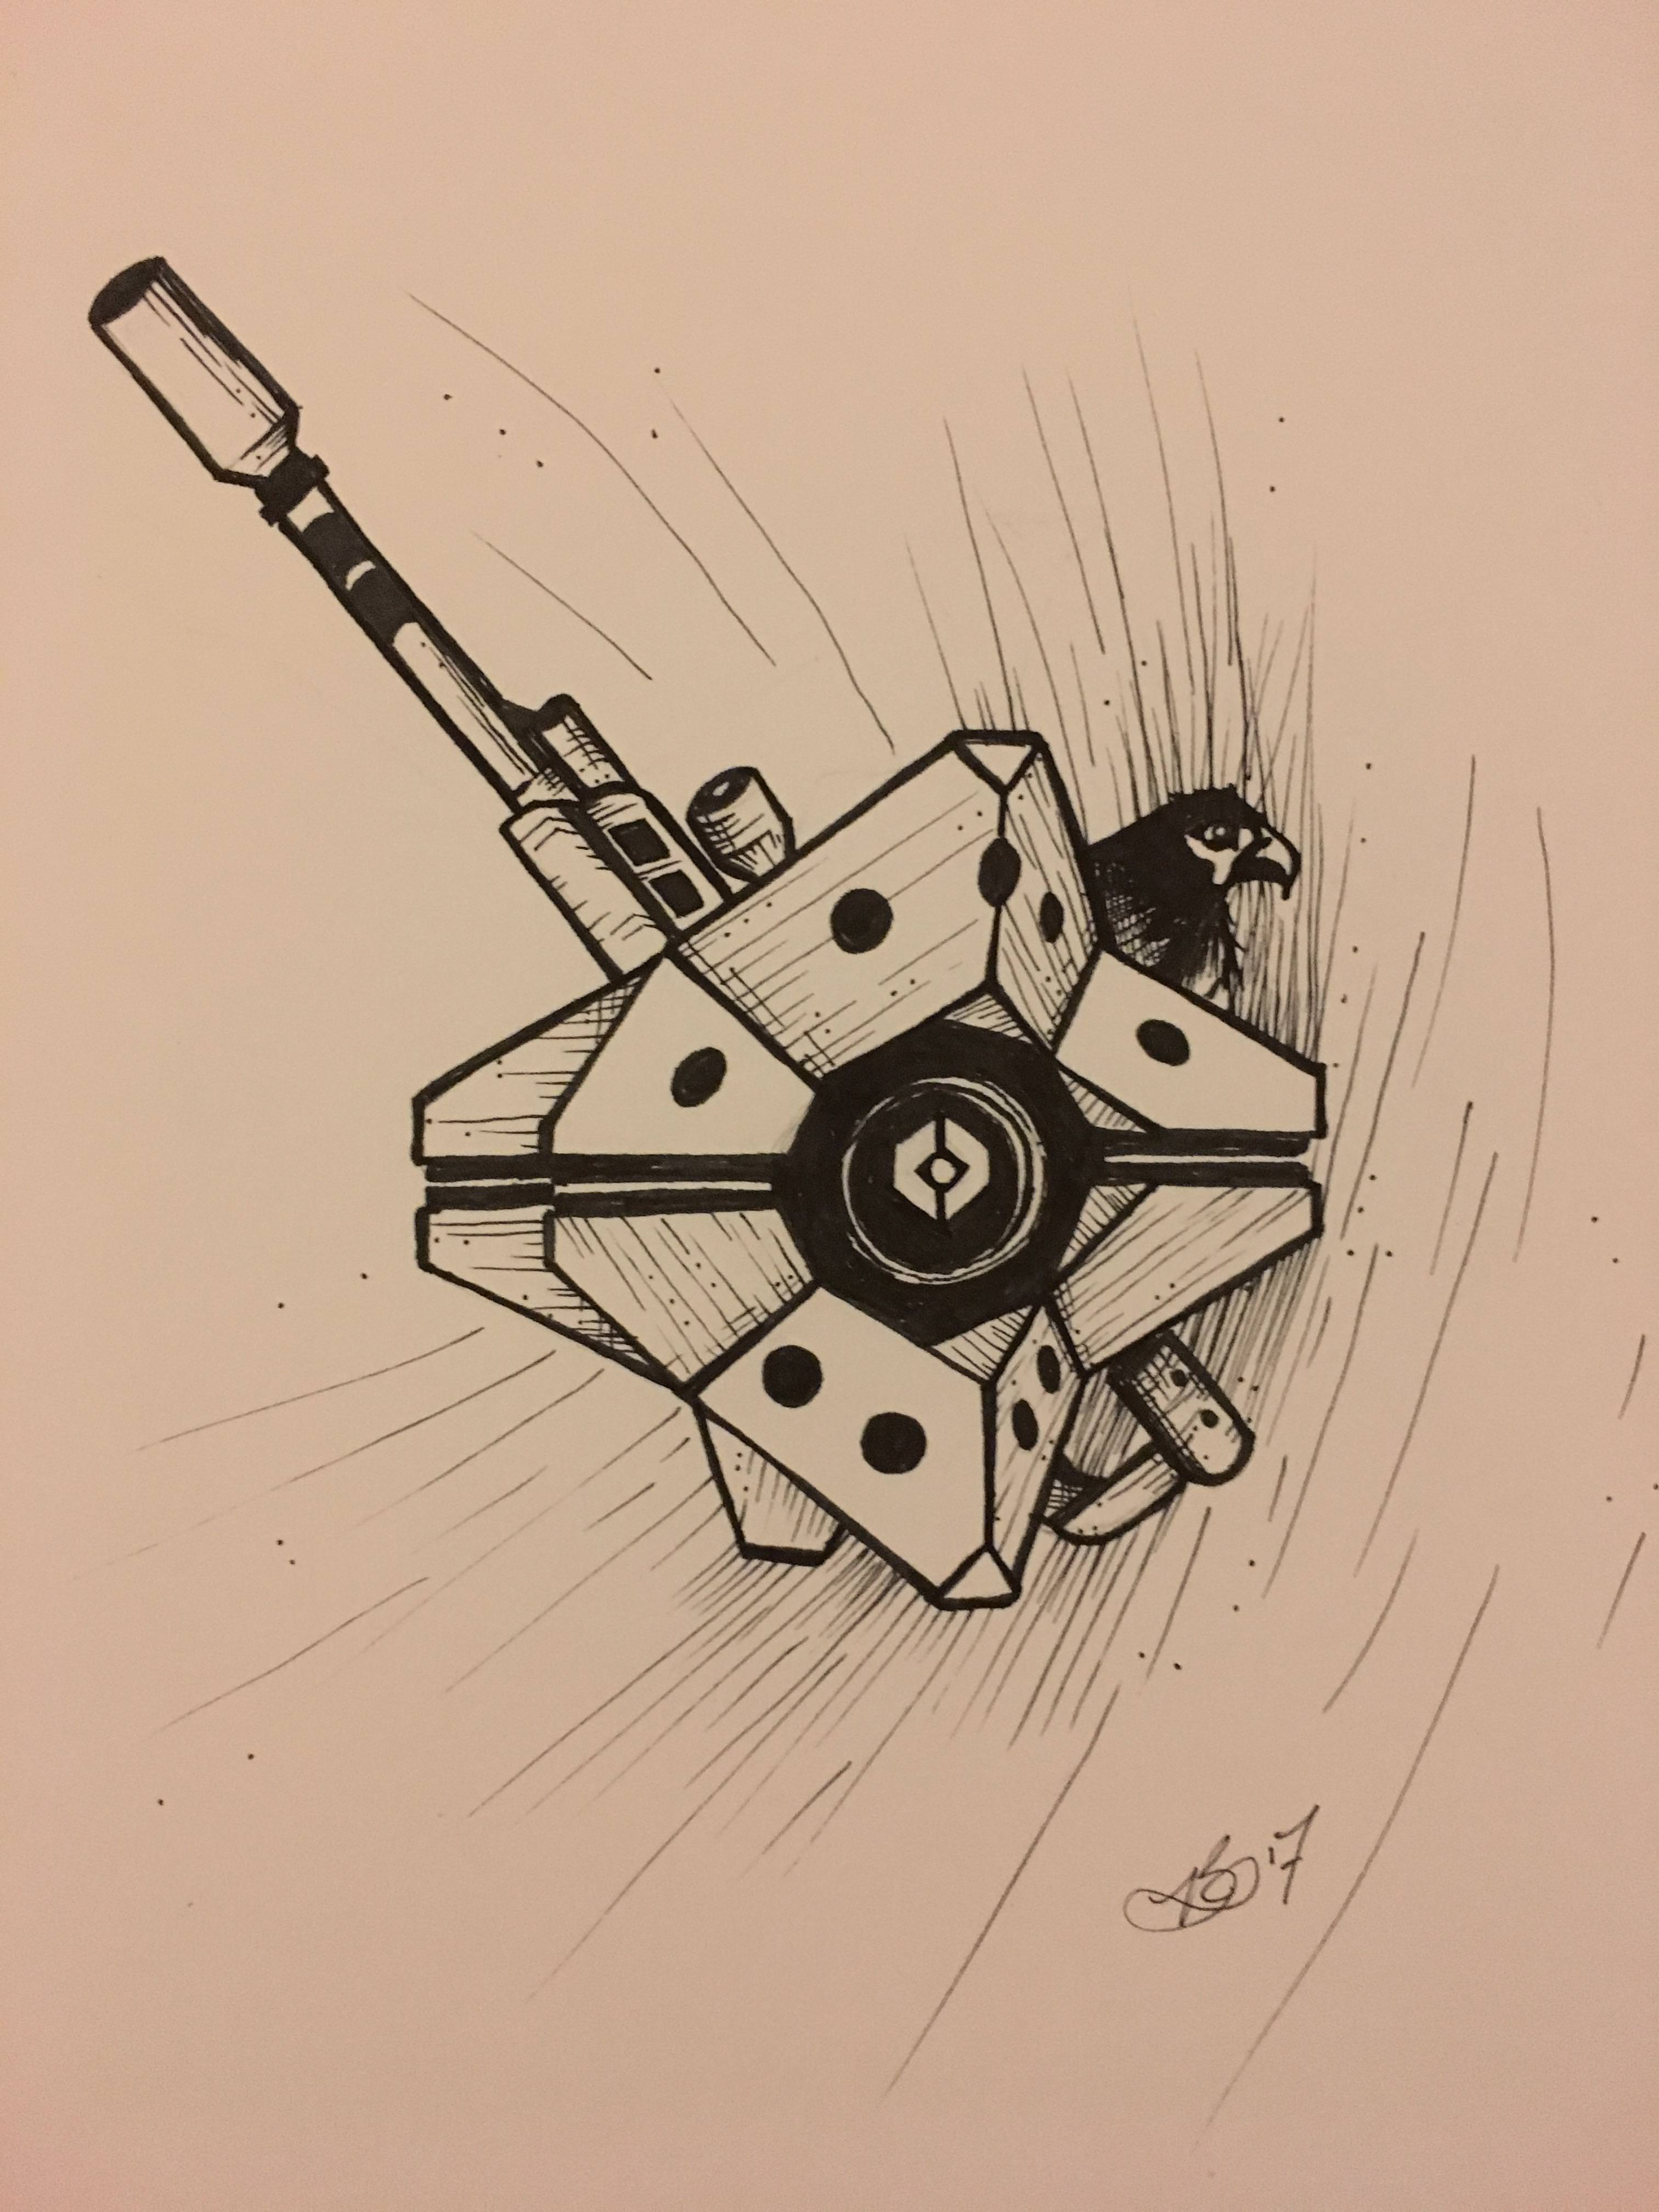 3024x4032 21 Destiny Ghost Drawing For Inktober!